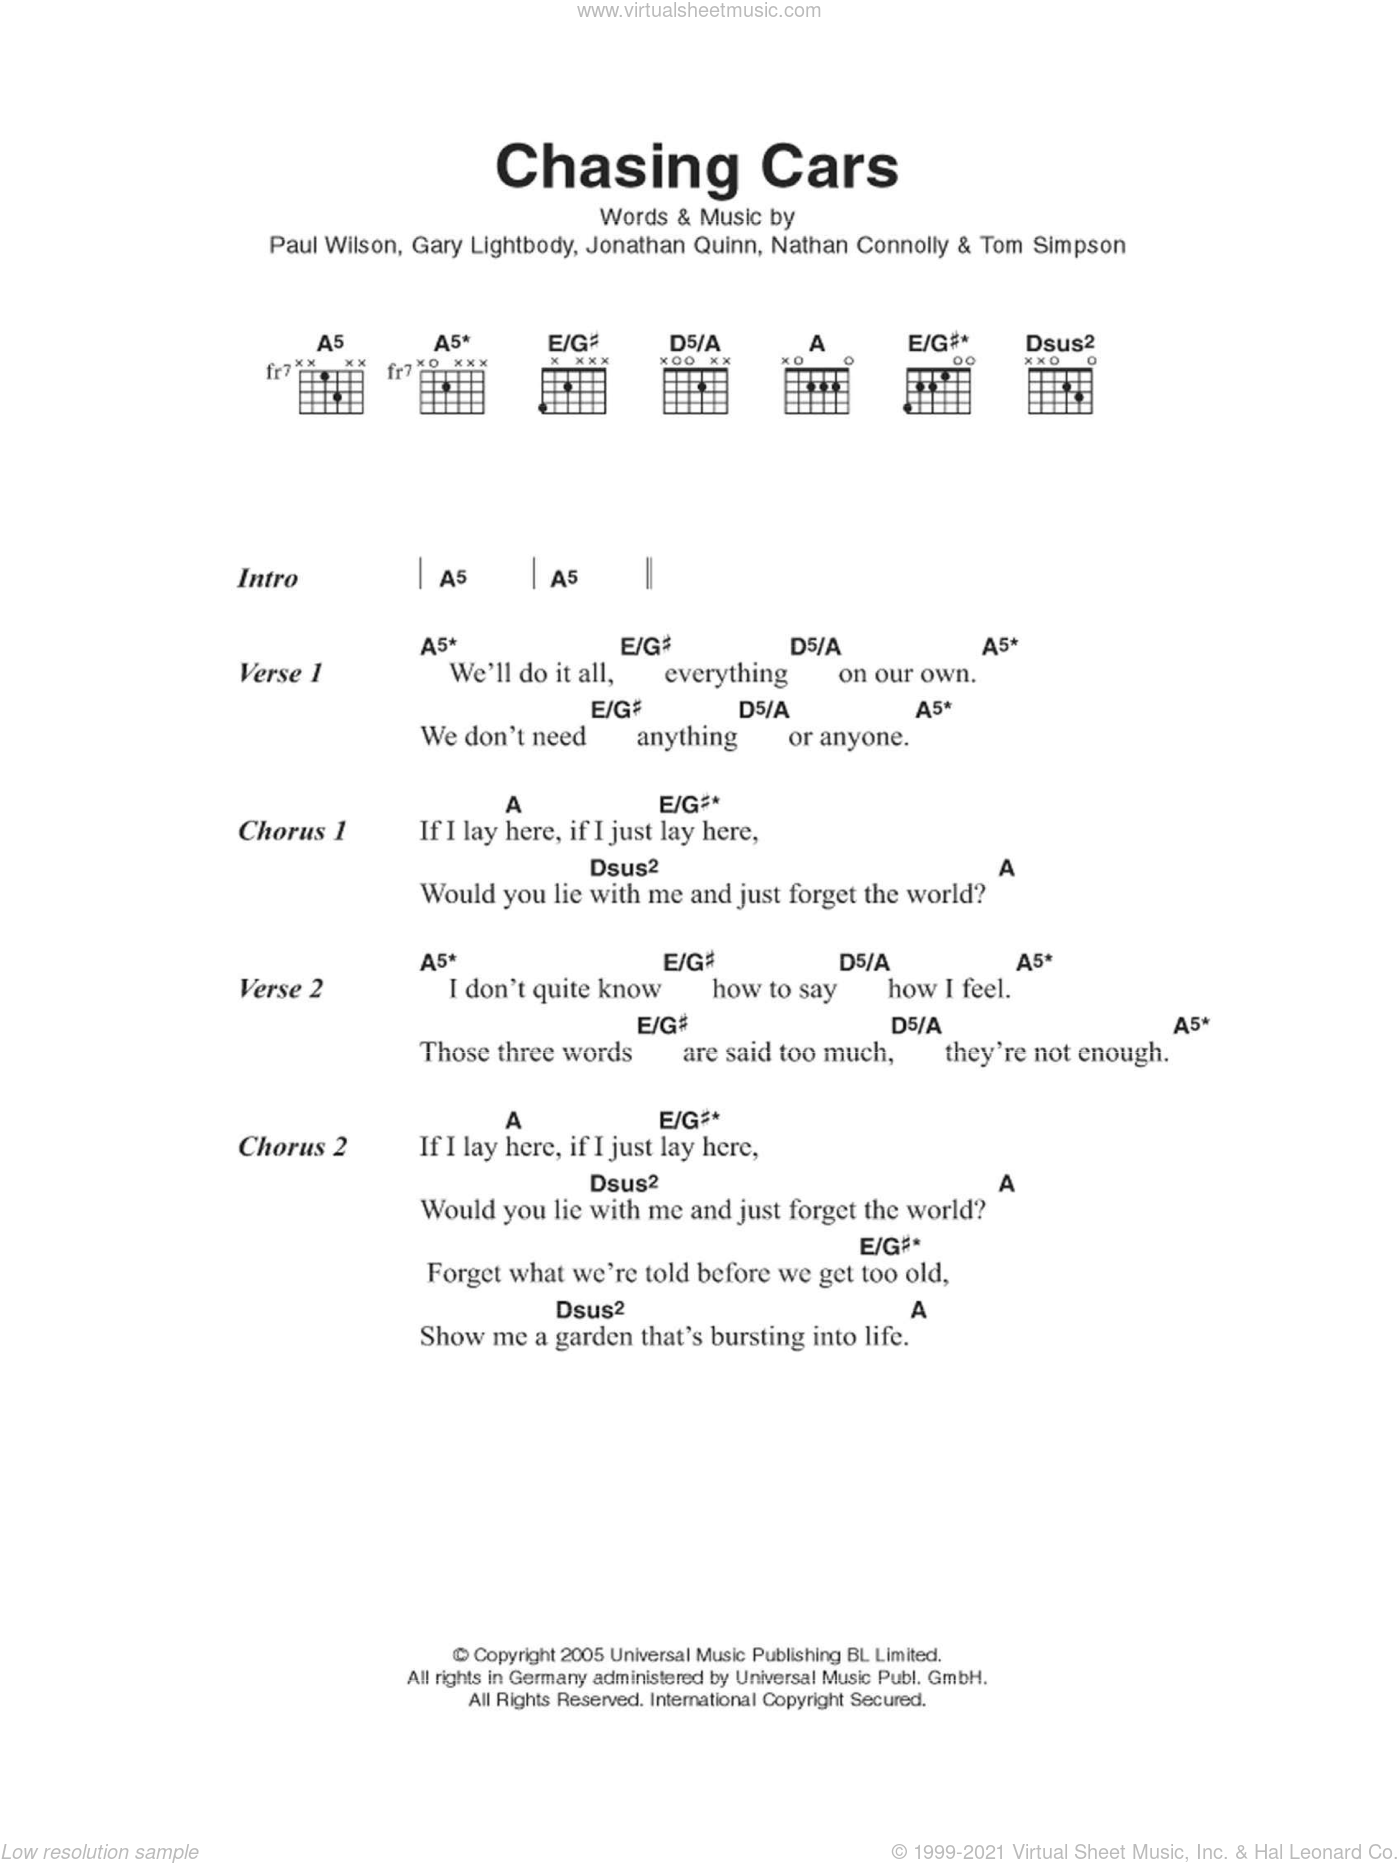 Chasing Cars sheet music for guitar (chords, lyrics, melody) by Tom Simpson